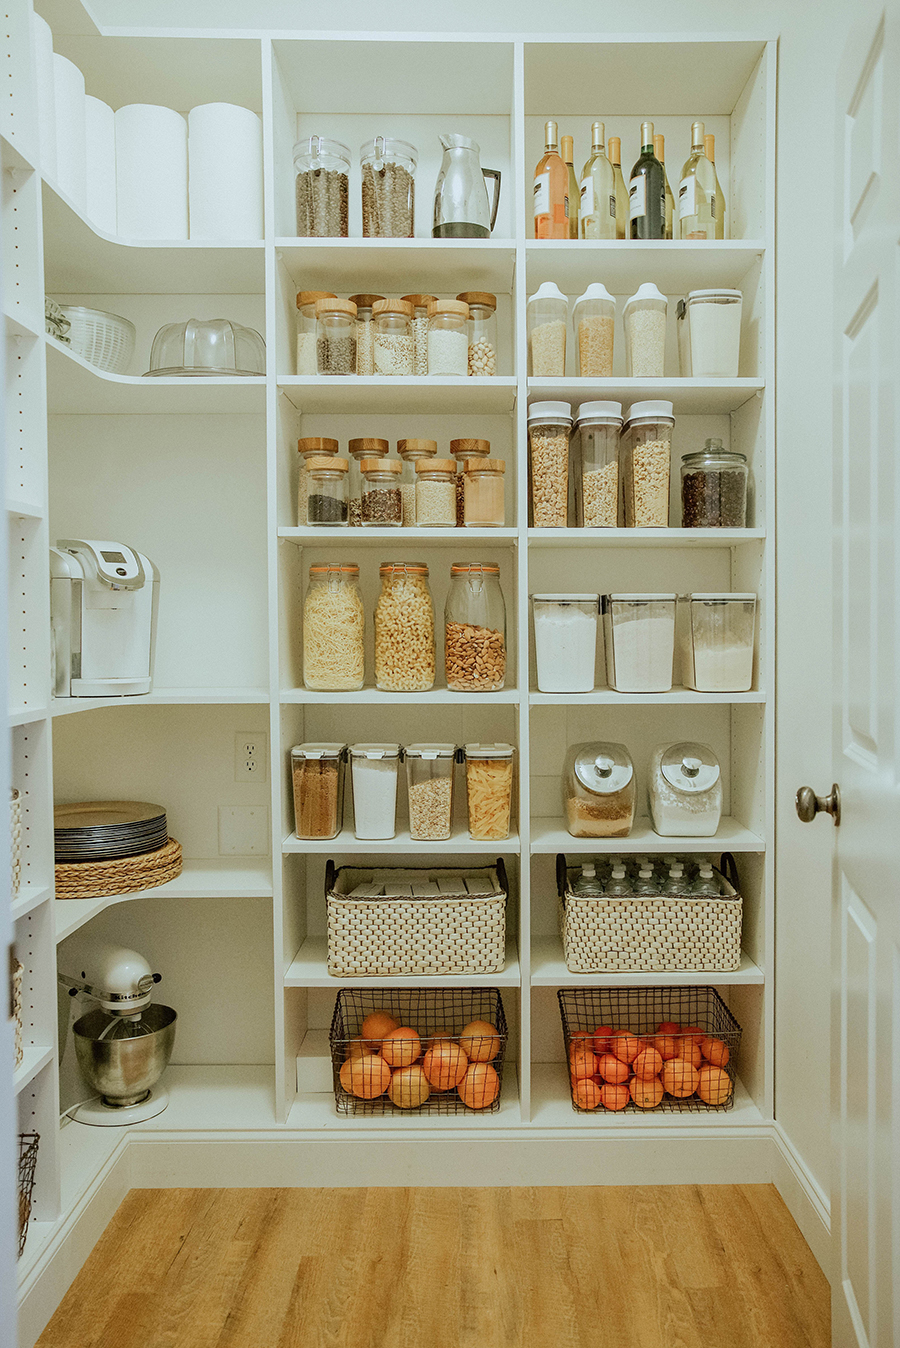 Open Shelving Kitchen Ideas Wood Pantry Shelving Walk In: Laundry Room To Walk-in Pantry Reveal